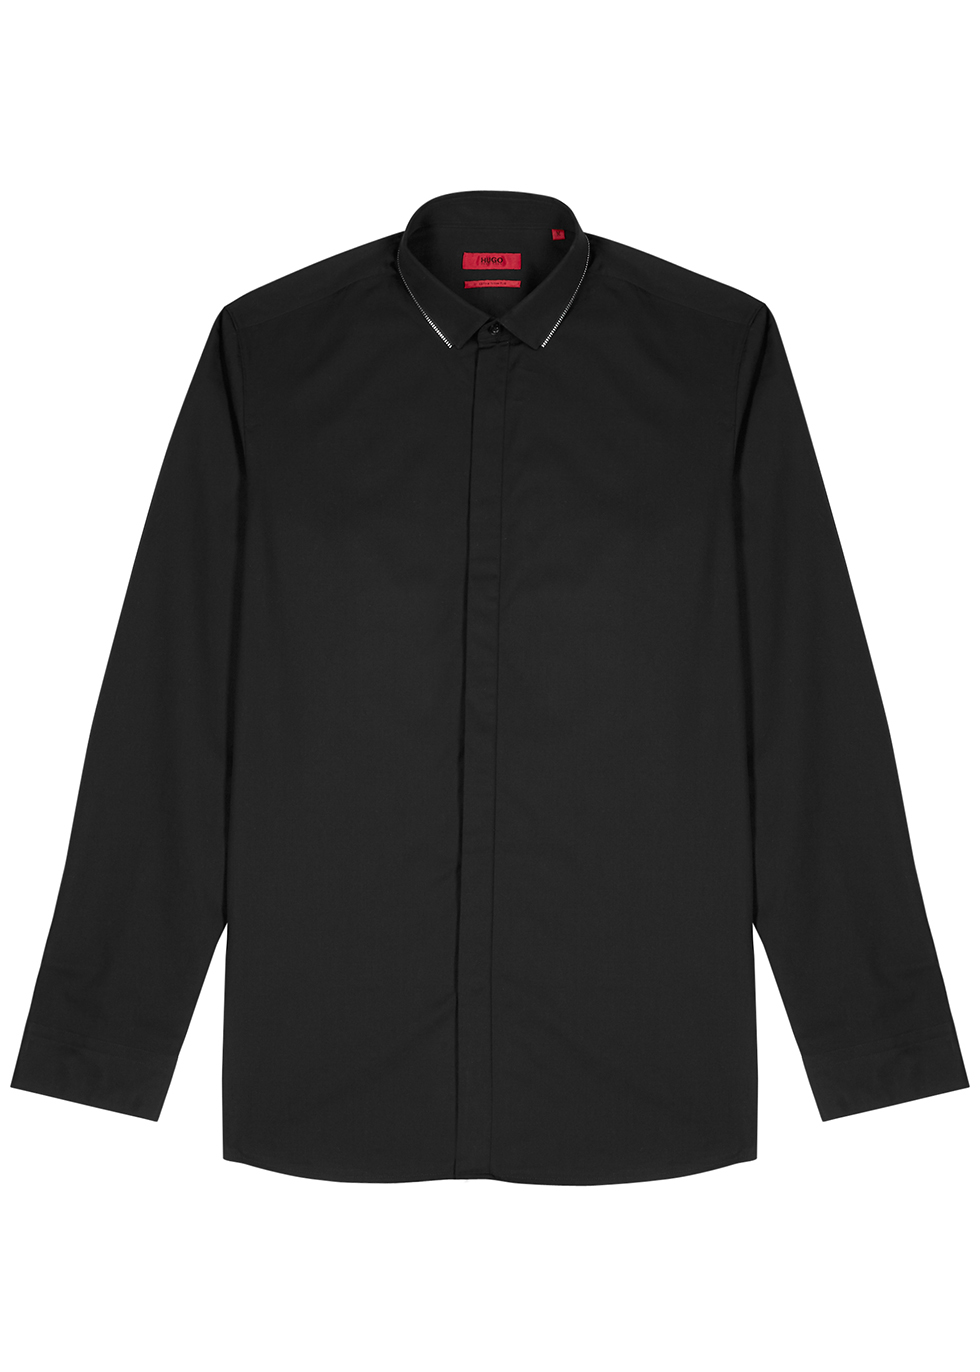 Evidio black zip-embellished cotton shirt